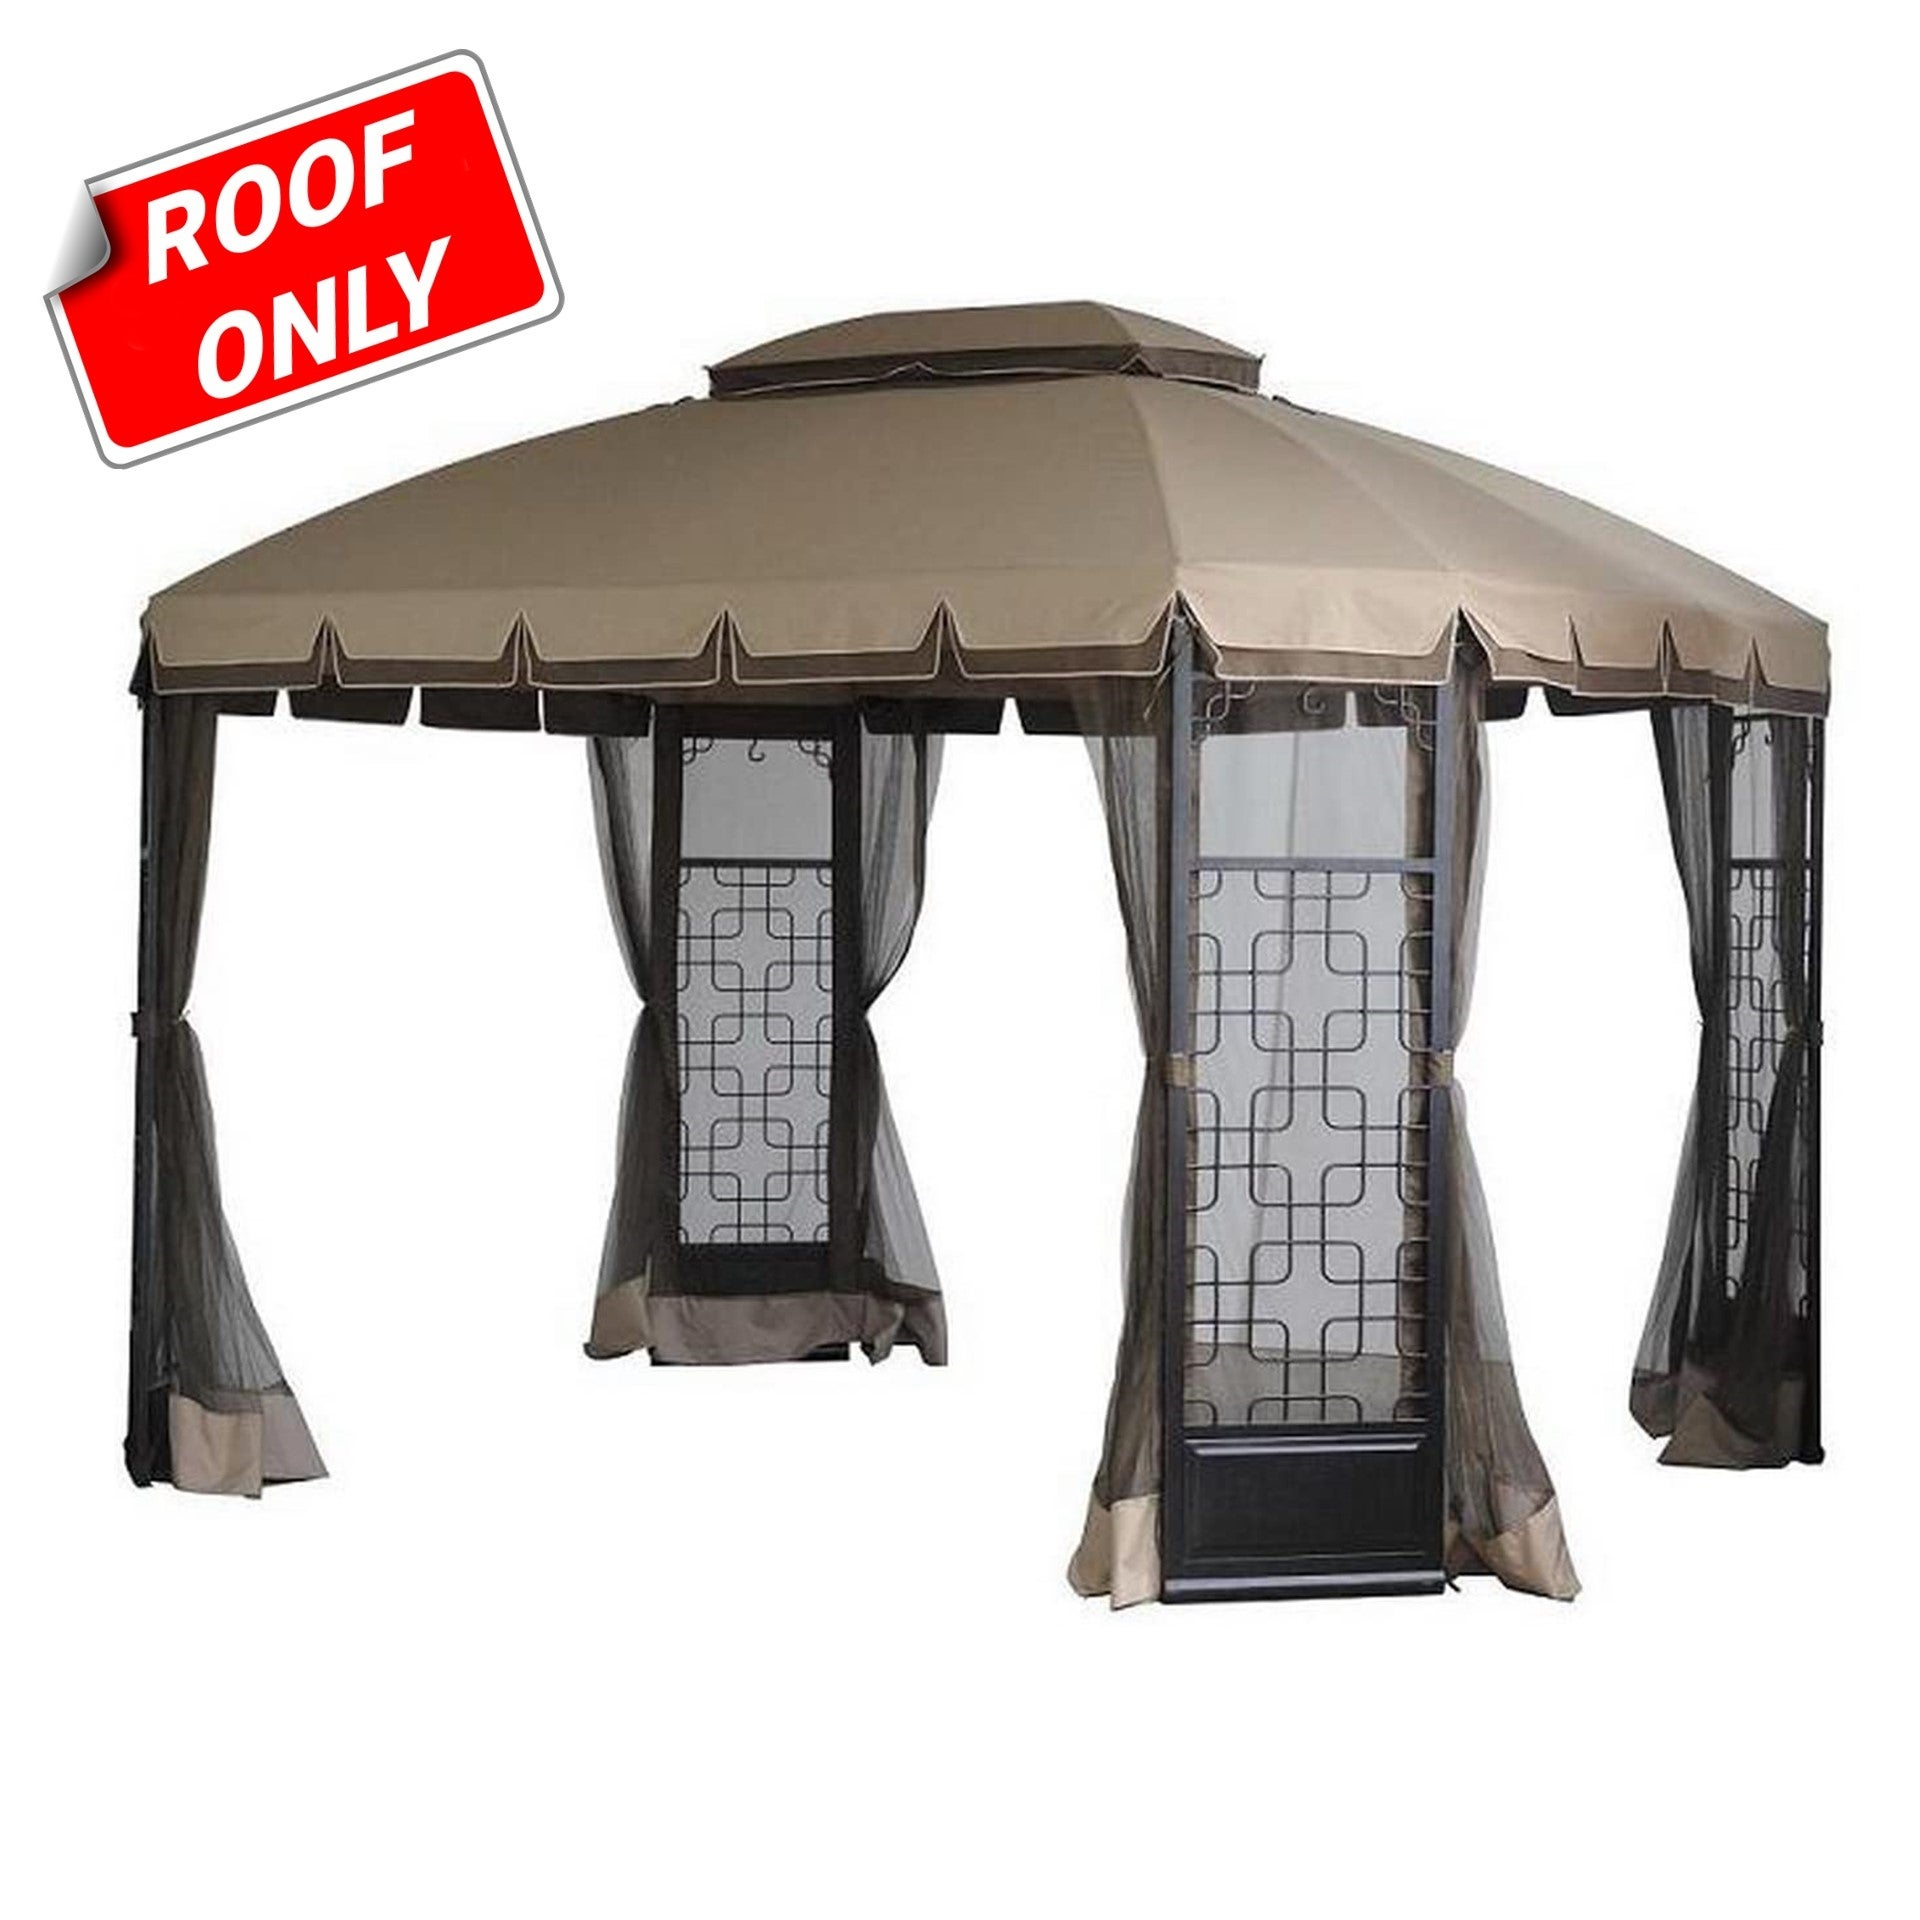 Sunjoy Replacement Canopy Set Deluxe For L Gz454pst A Trellis Gazebo Overstock 20749085